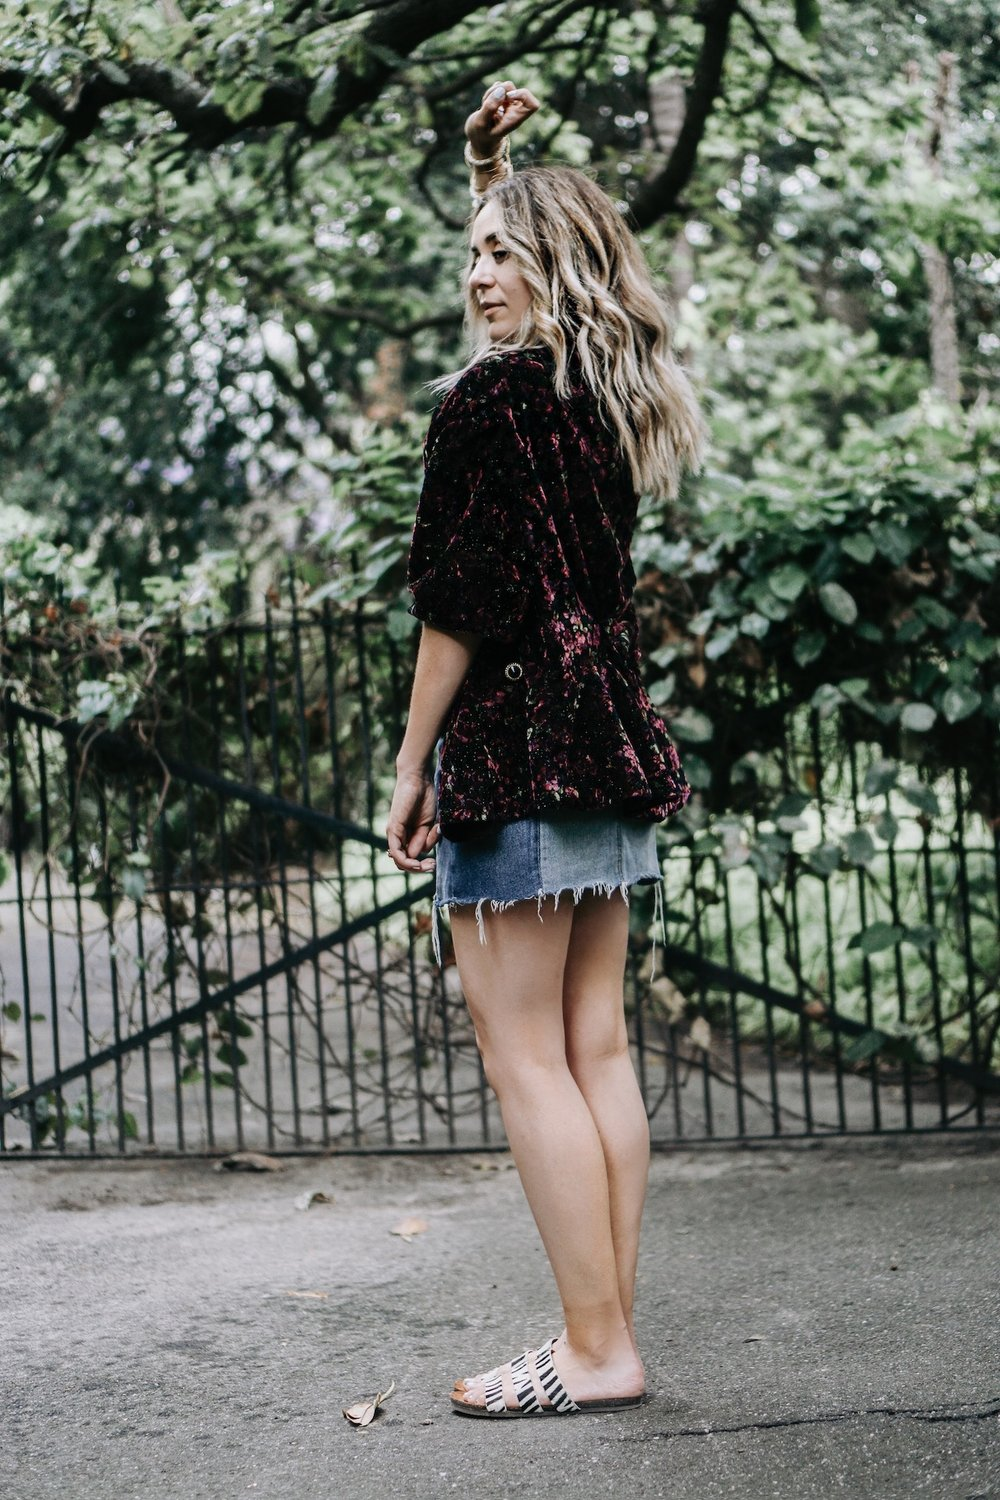 Denim skirt outfit // A Week Of Uncompromising Sustainable Style With Sonia Kessler From Native Styling on The Good Trade